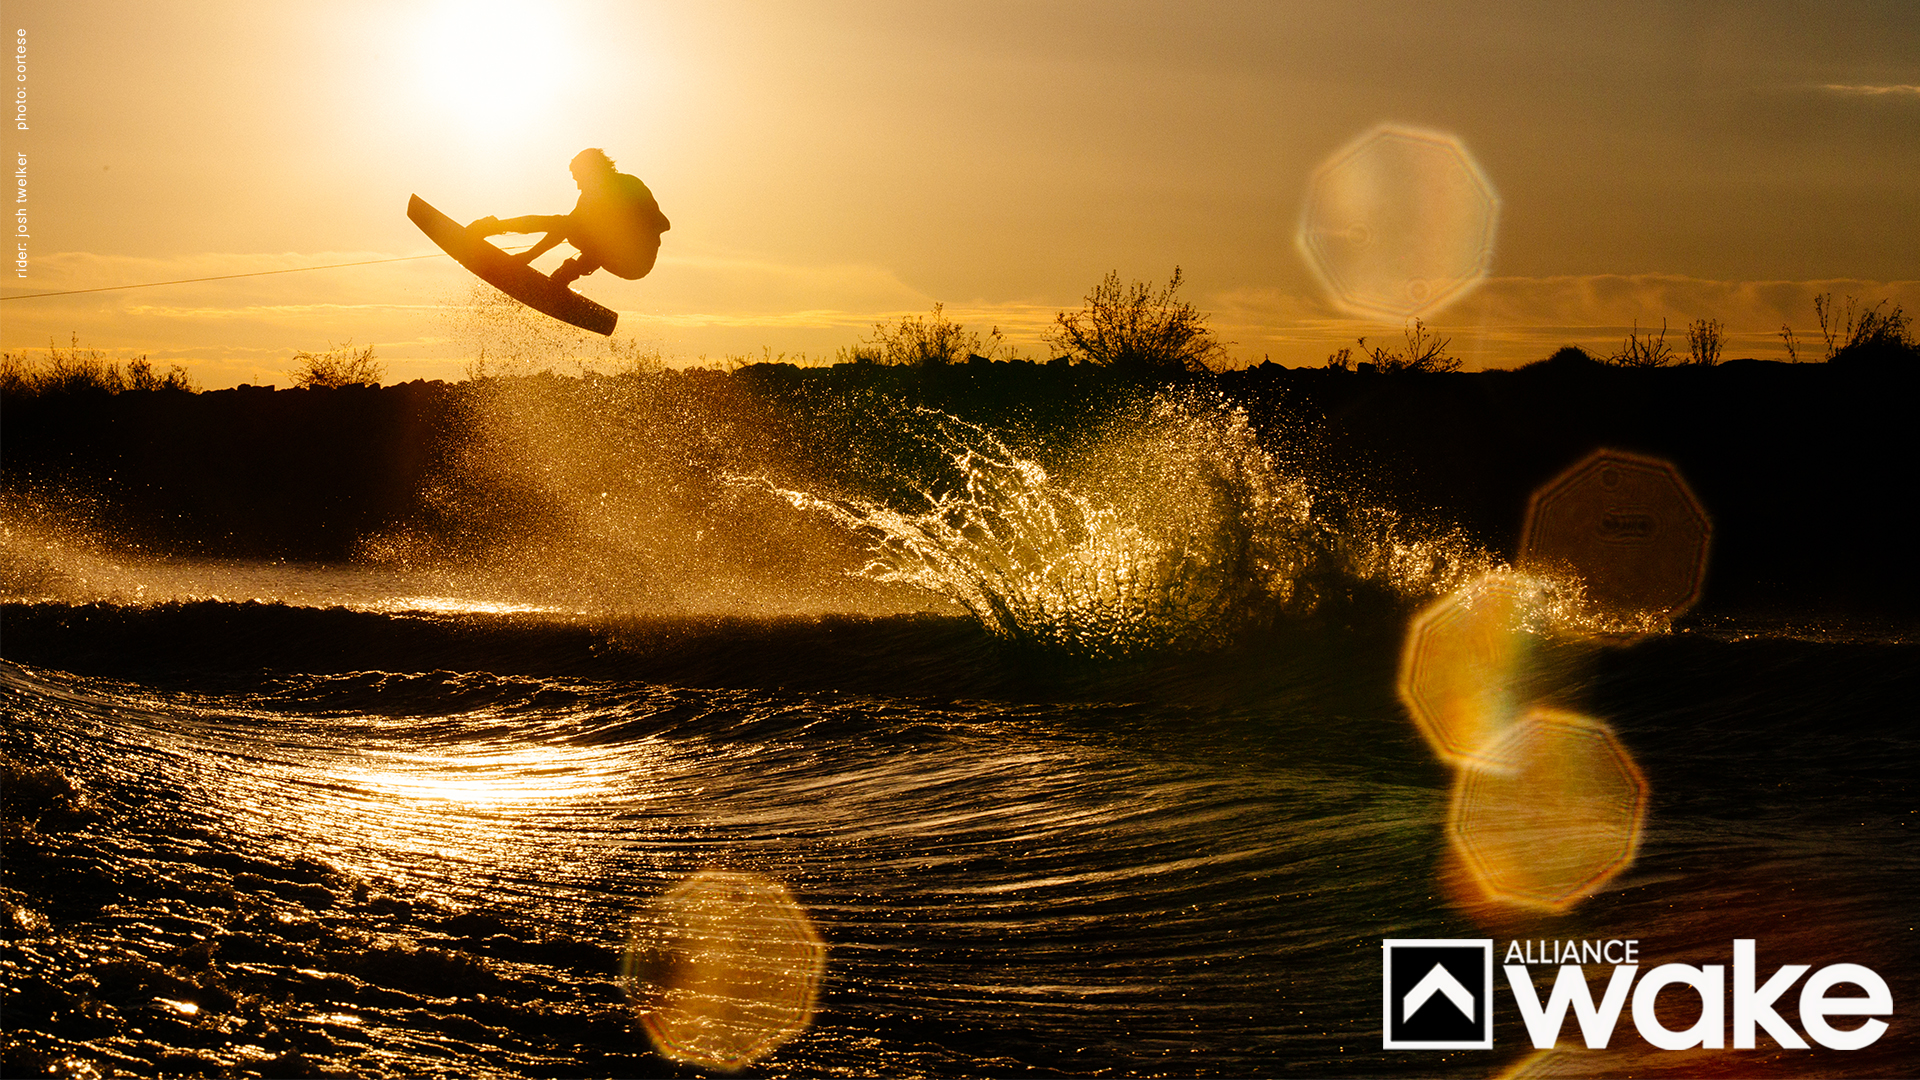 New Hd Wallpaper Girl Download Wallpapers Silhouette Alliance Wakeboard